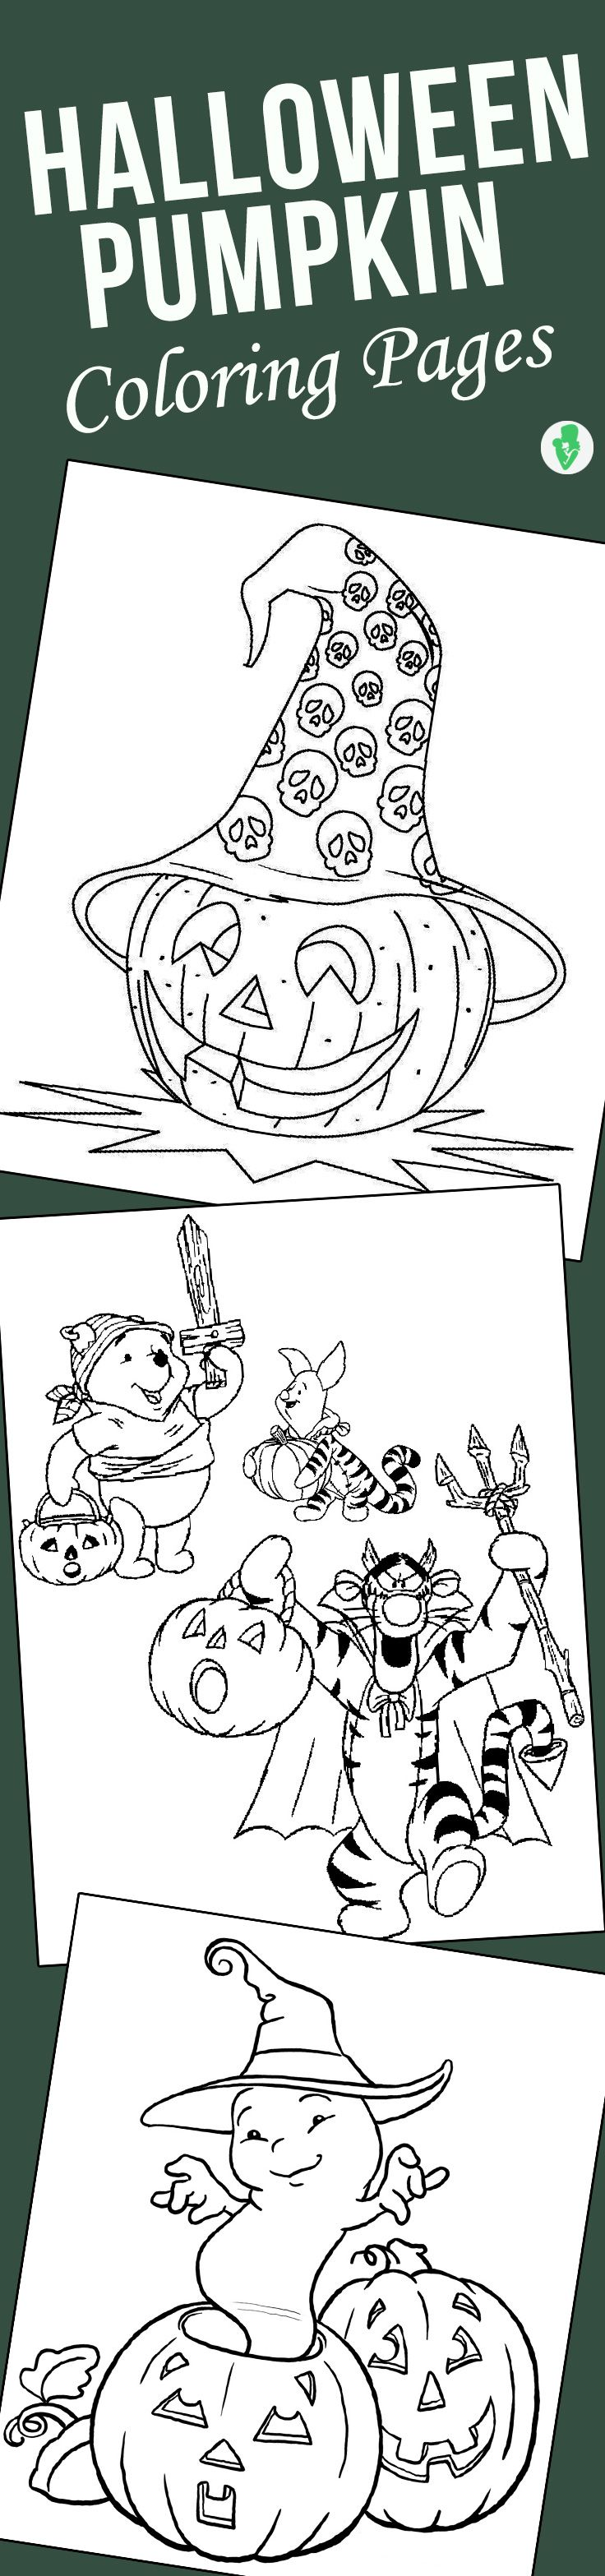 Top 10 Free Printable Halloween Pumpkin Coloring Pages Online | Free ...